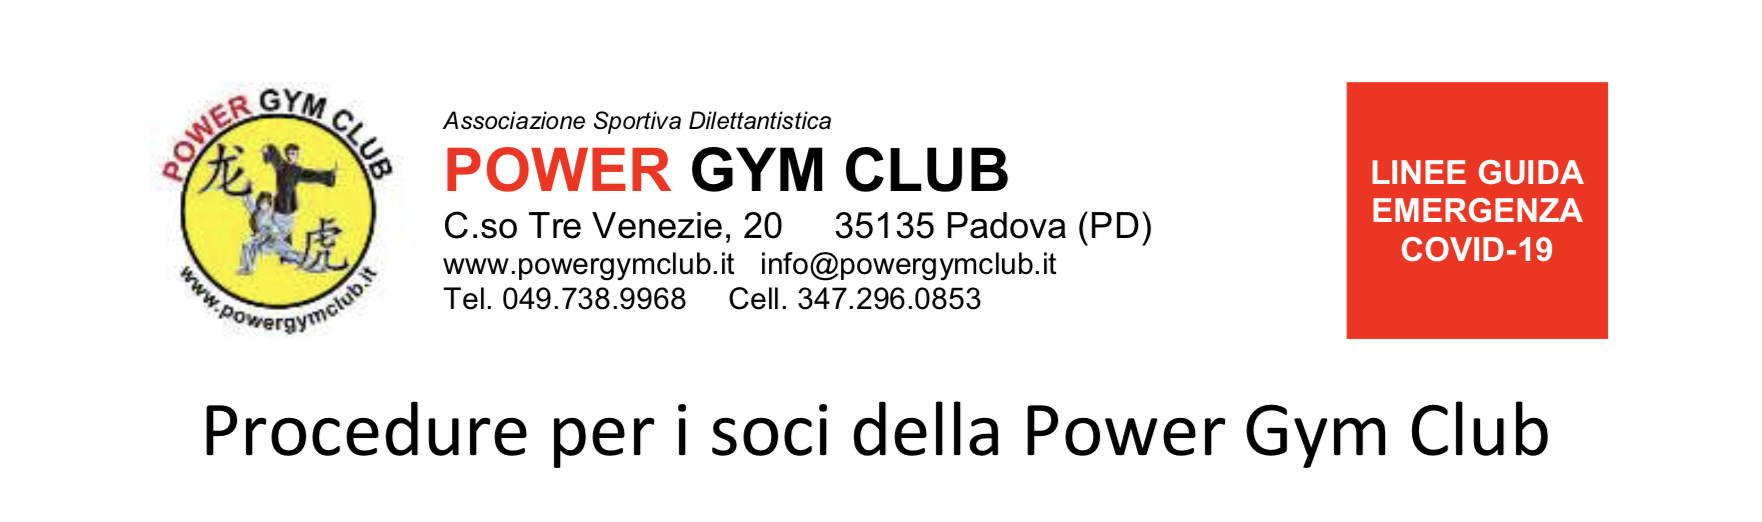 Procedure per i soci della Power Gym Club - COVID-19